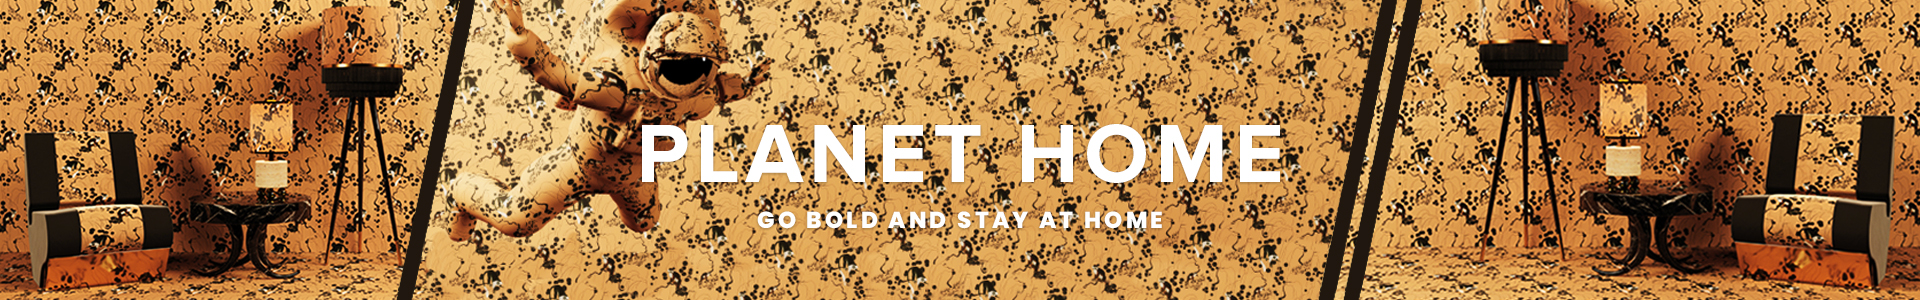 Planet Home Banner